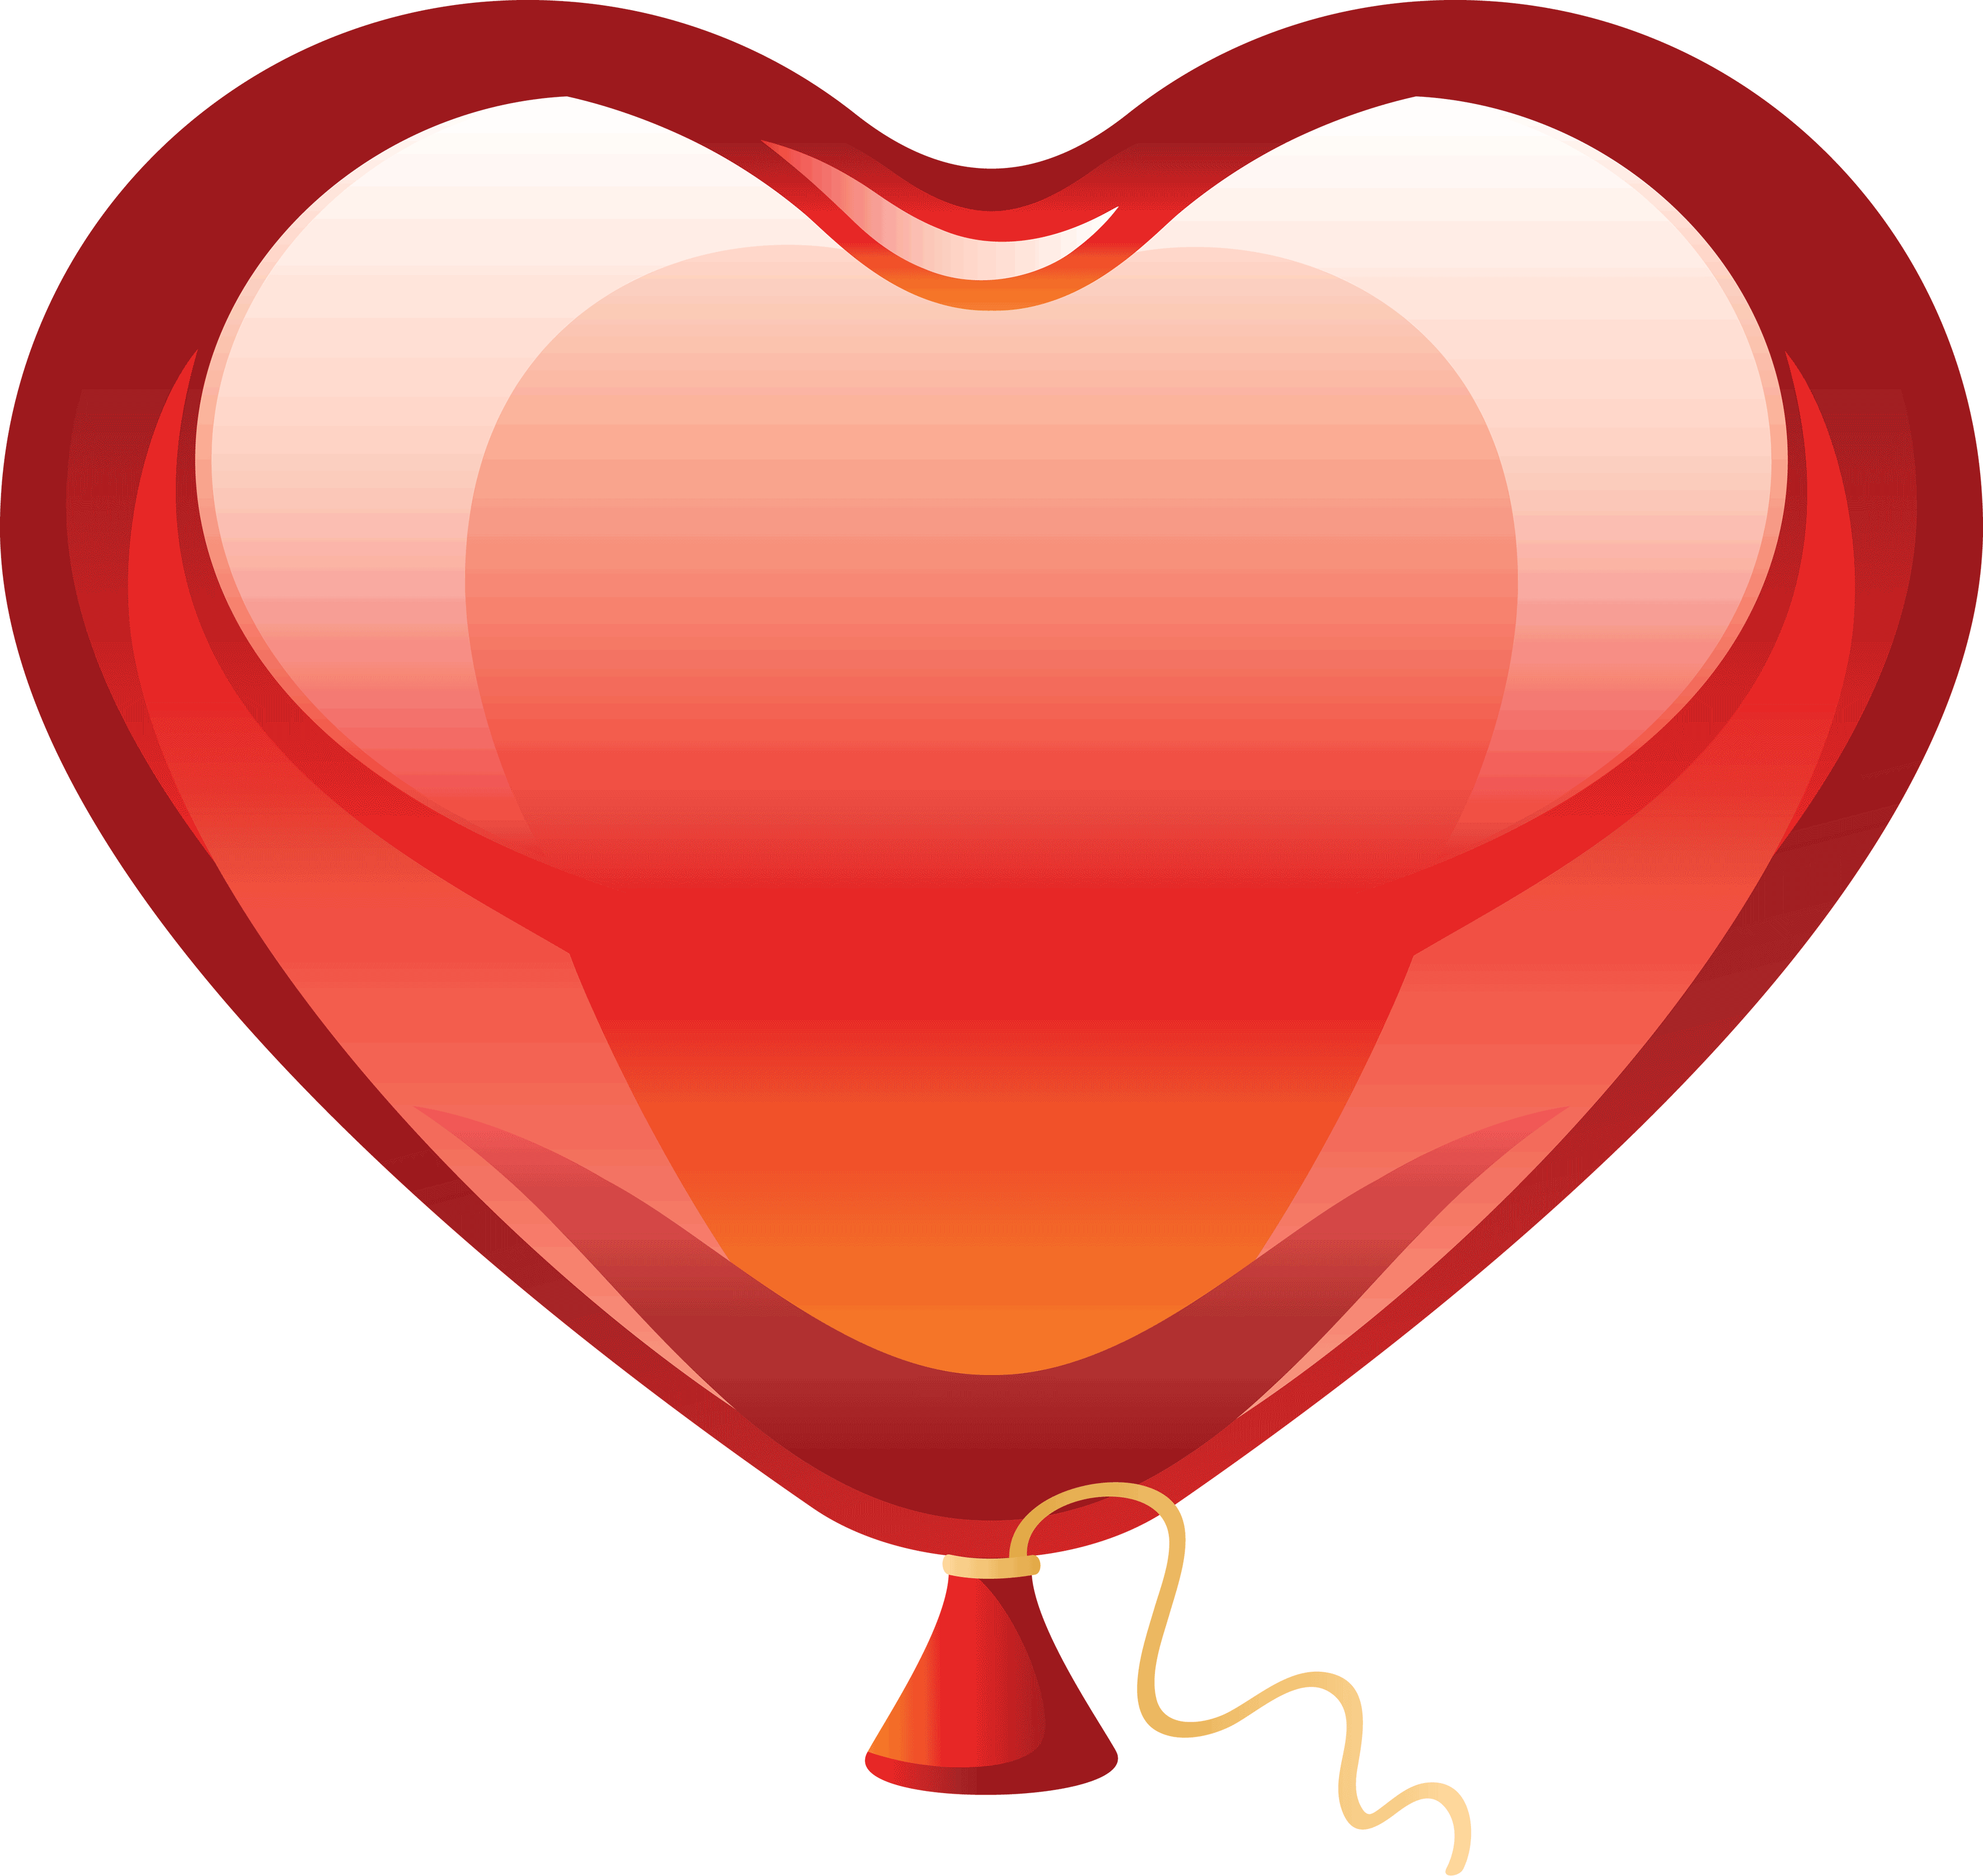 heart png clipart balloon